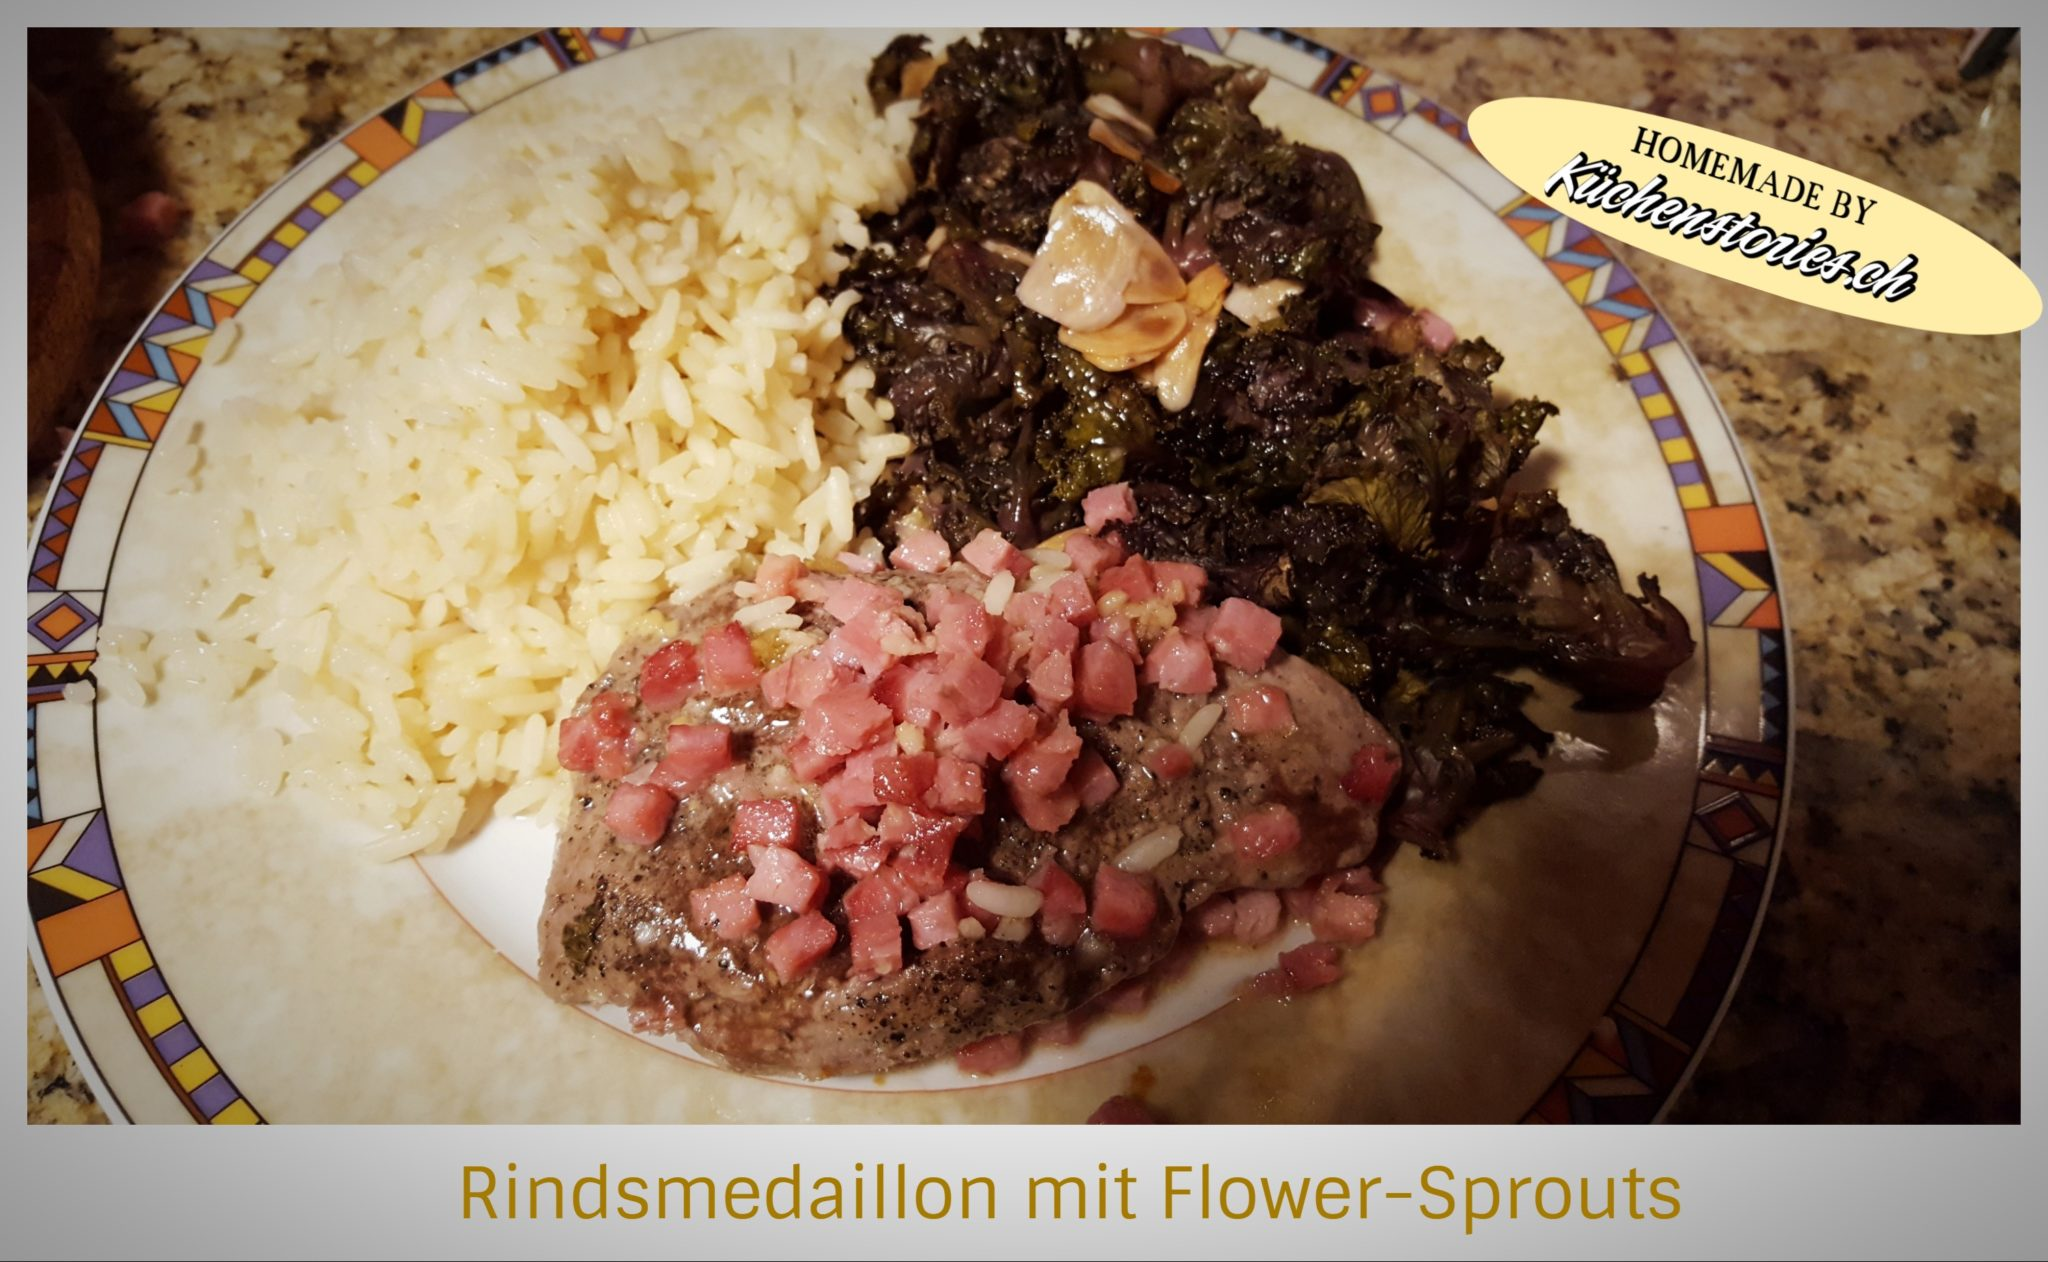 Rindsmedaillon mit Flower-Sprouts